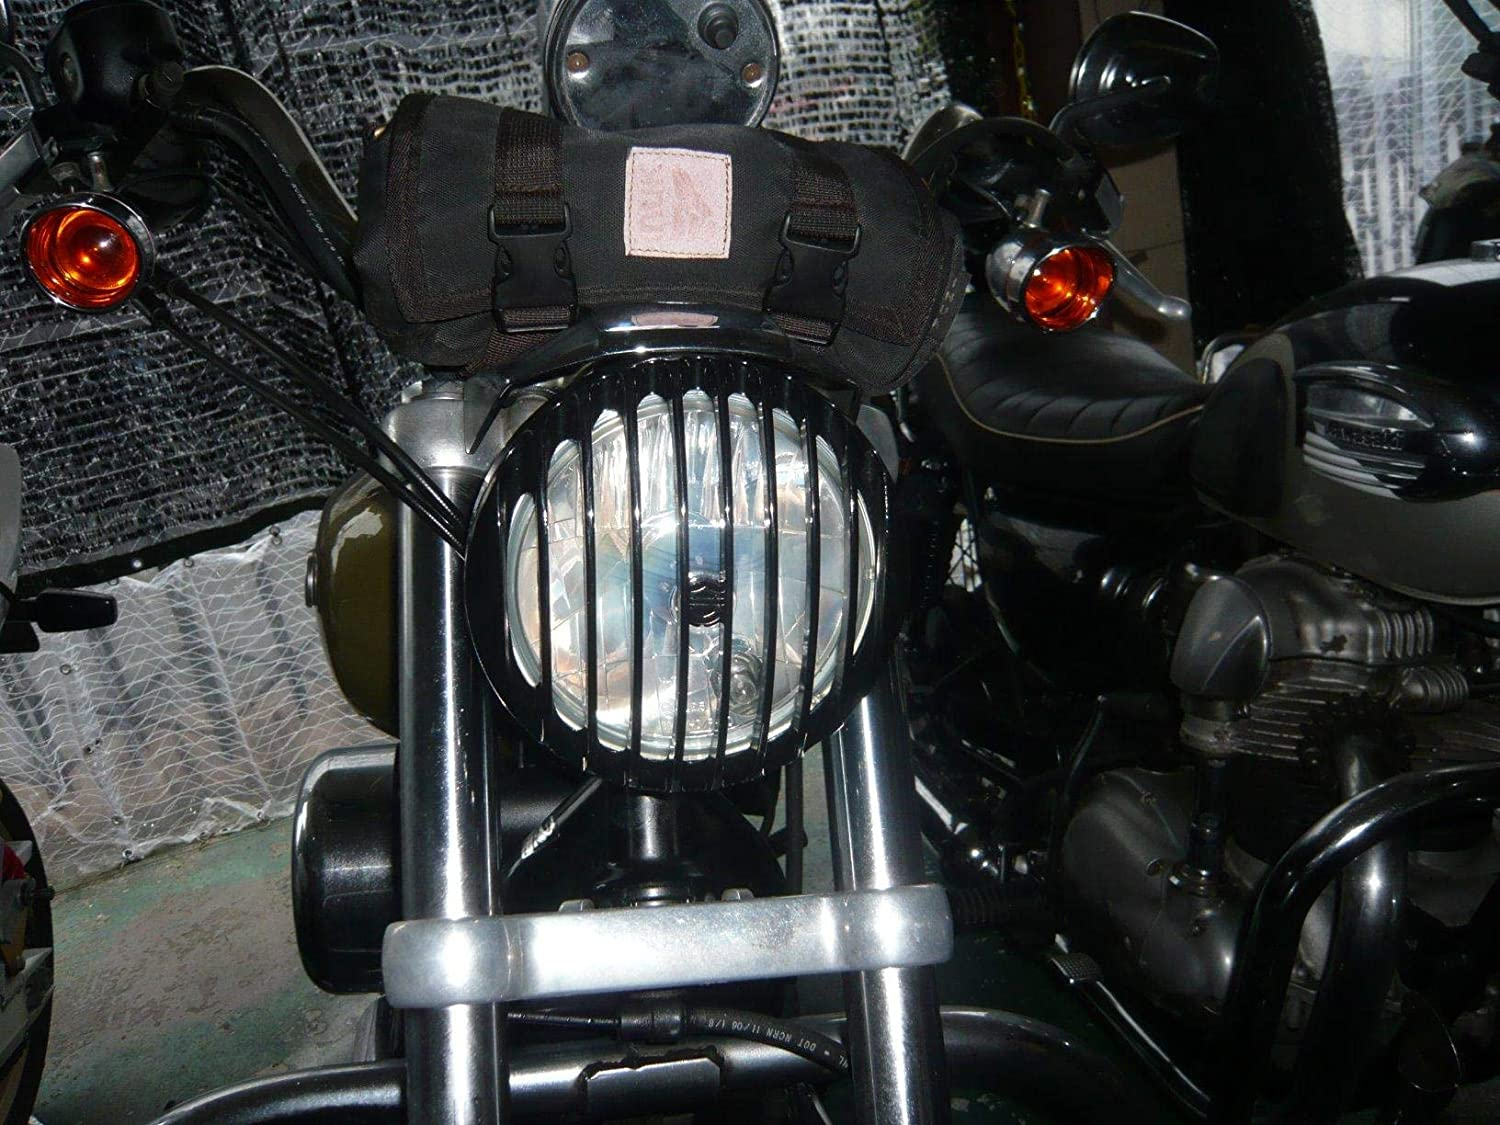 AQIMY 5 3/4 Black CNC Headlight Grill Cover for Harley Davidson ...